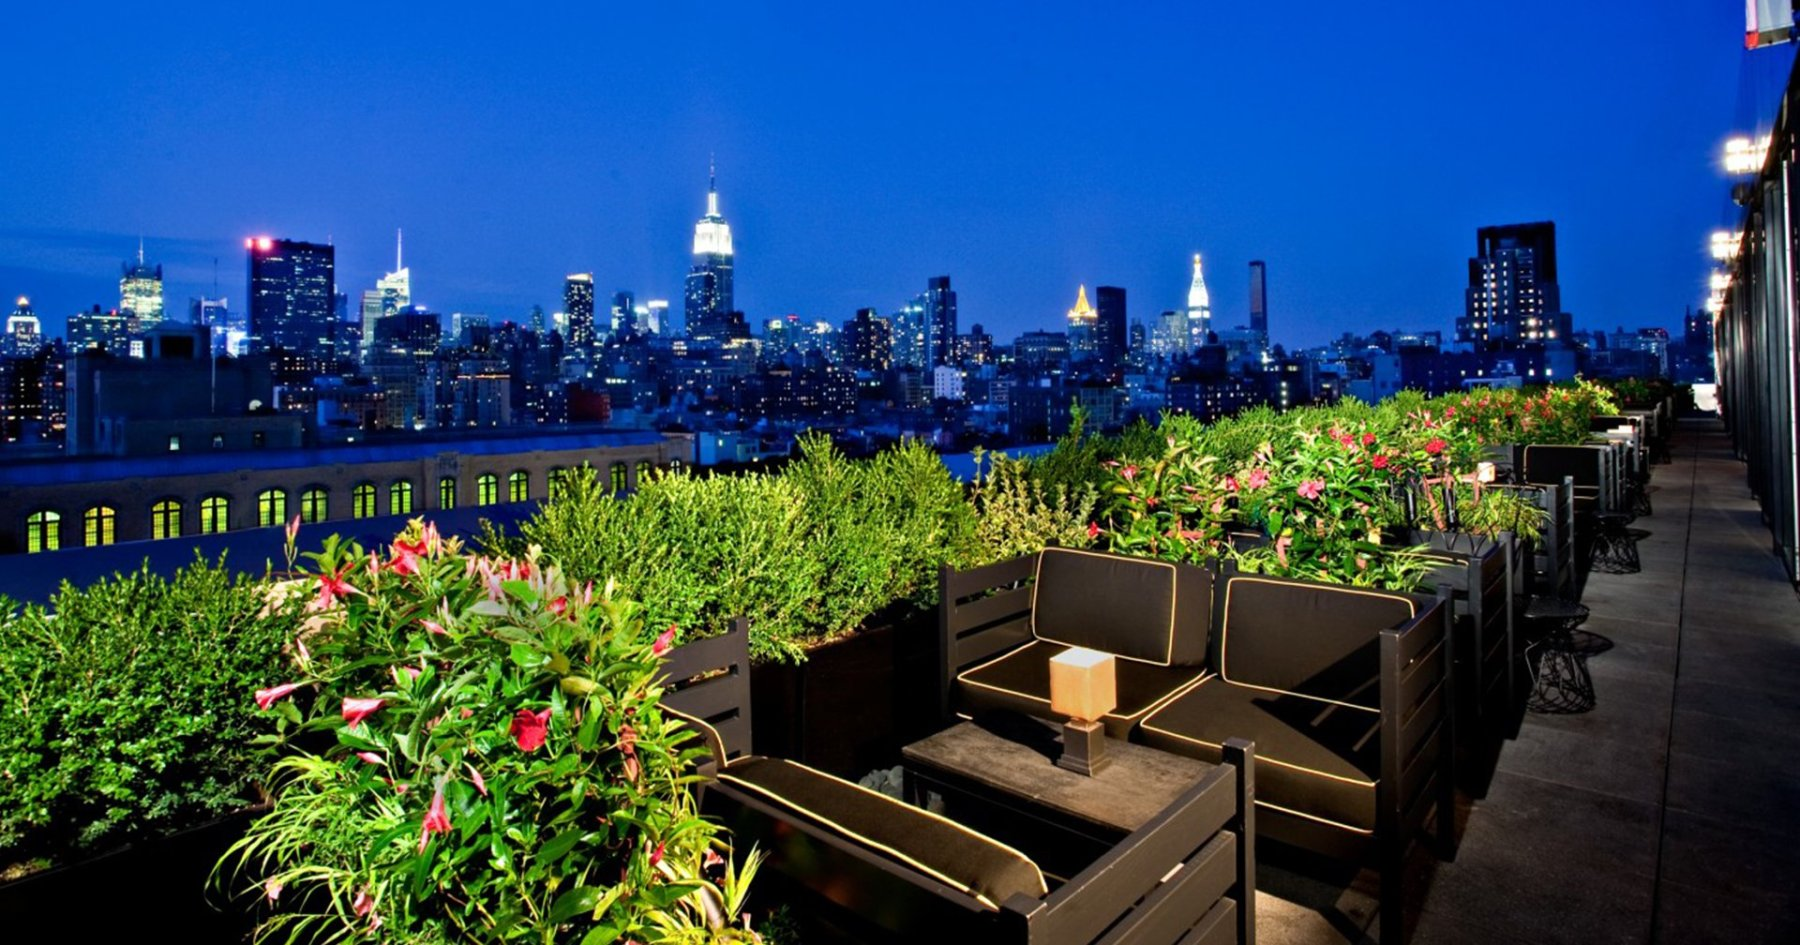 15 Late-Night NYC Spots Where 4 A.M. Is But a Number